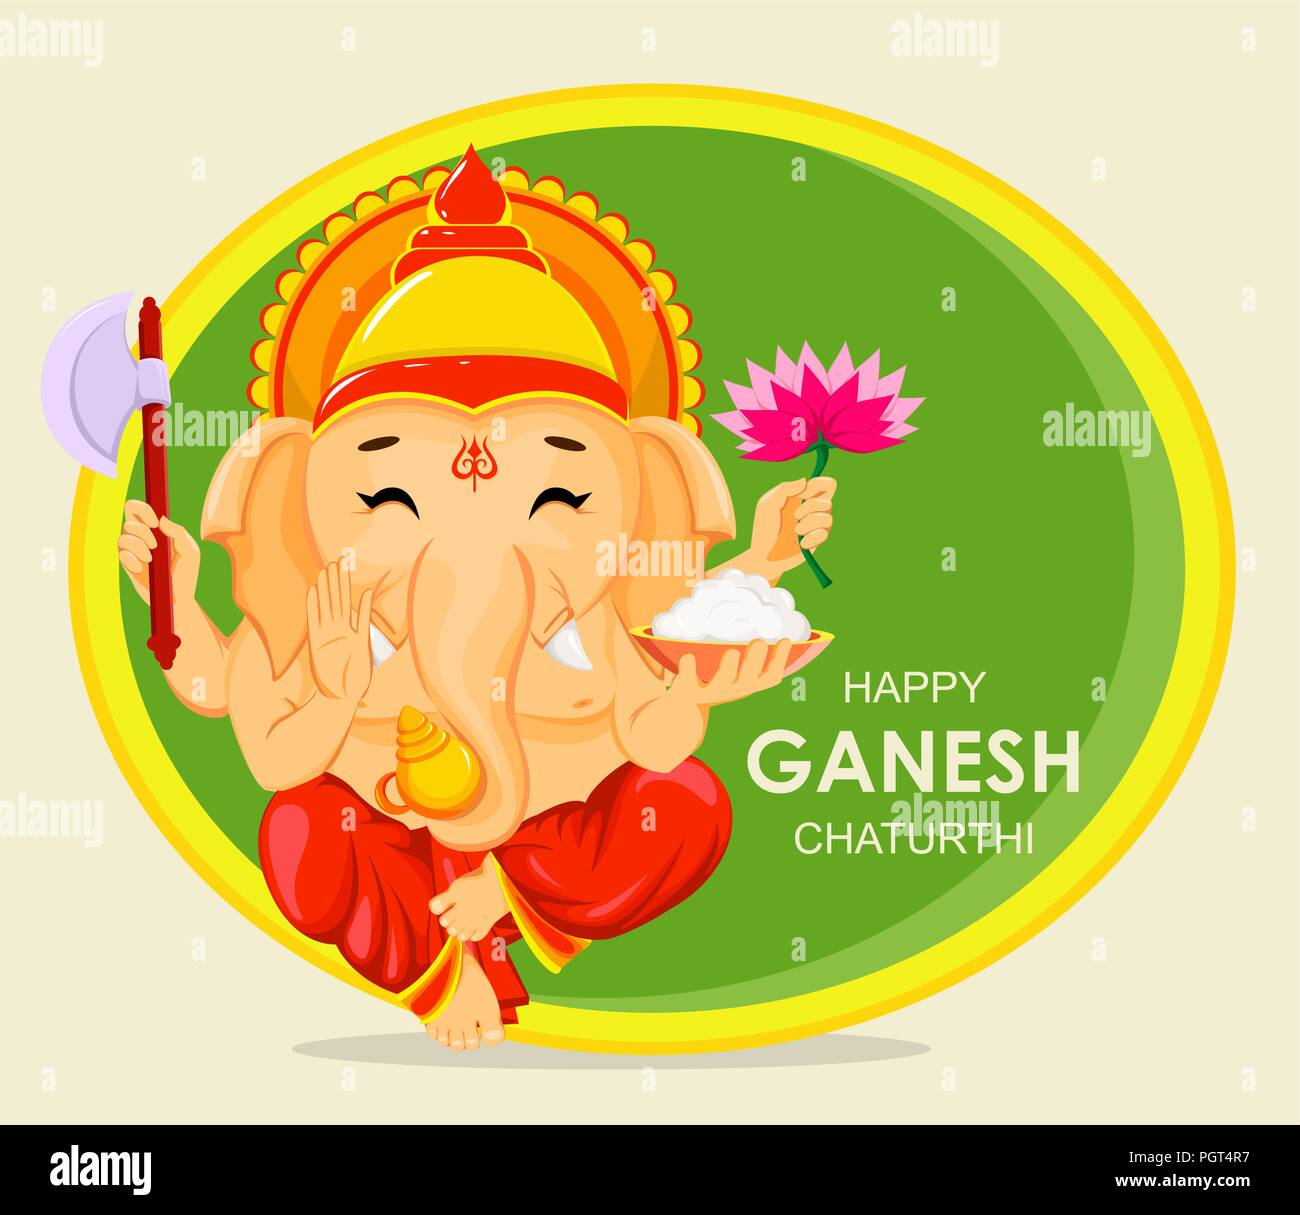 Happy Ganesh Chaturthi Greeting Card For Traditional Indian Festival